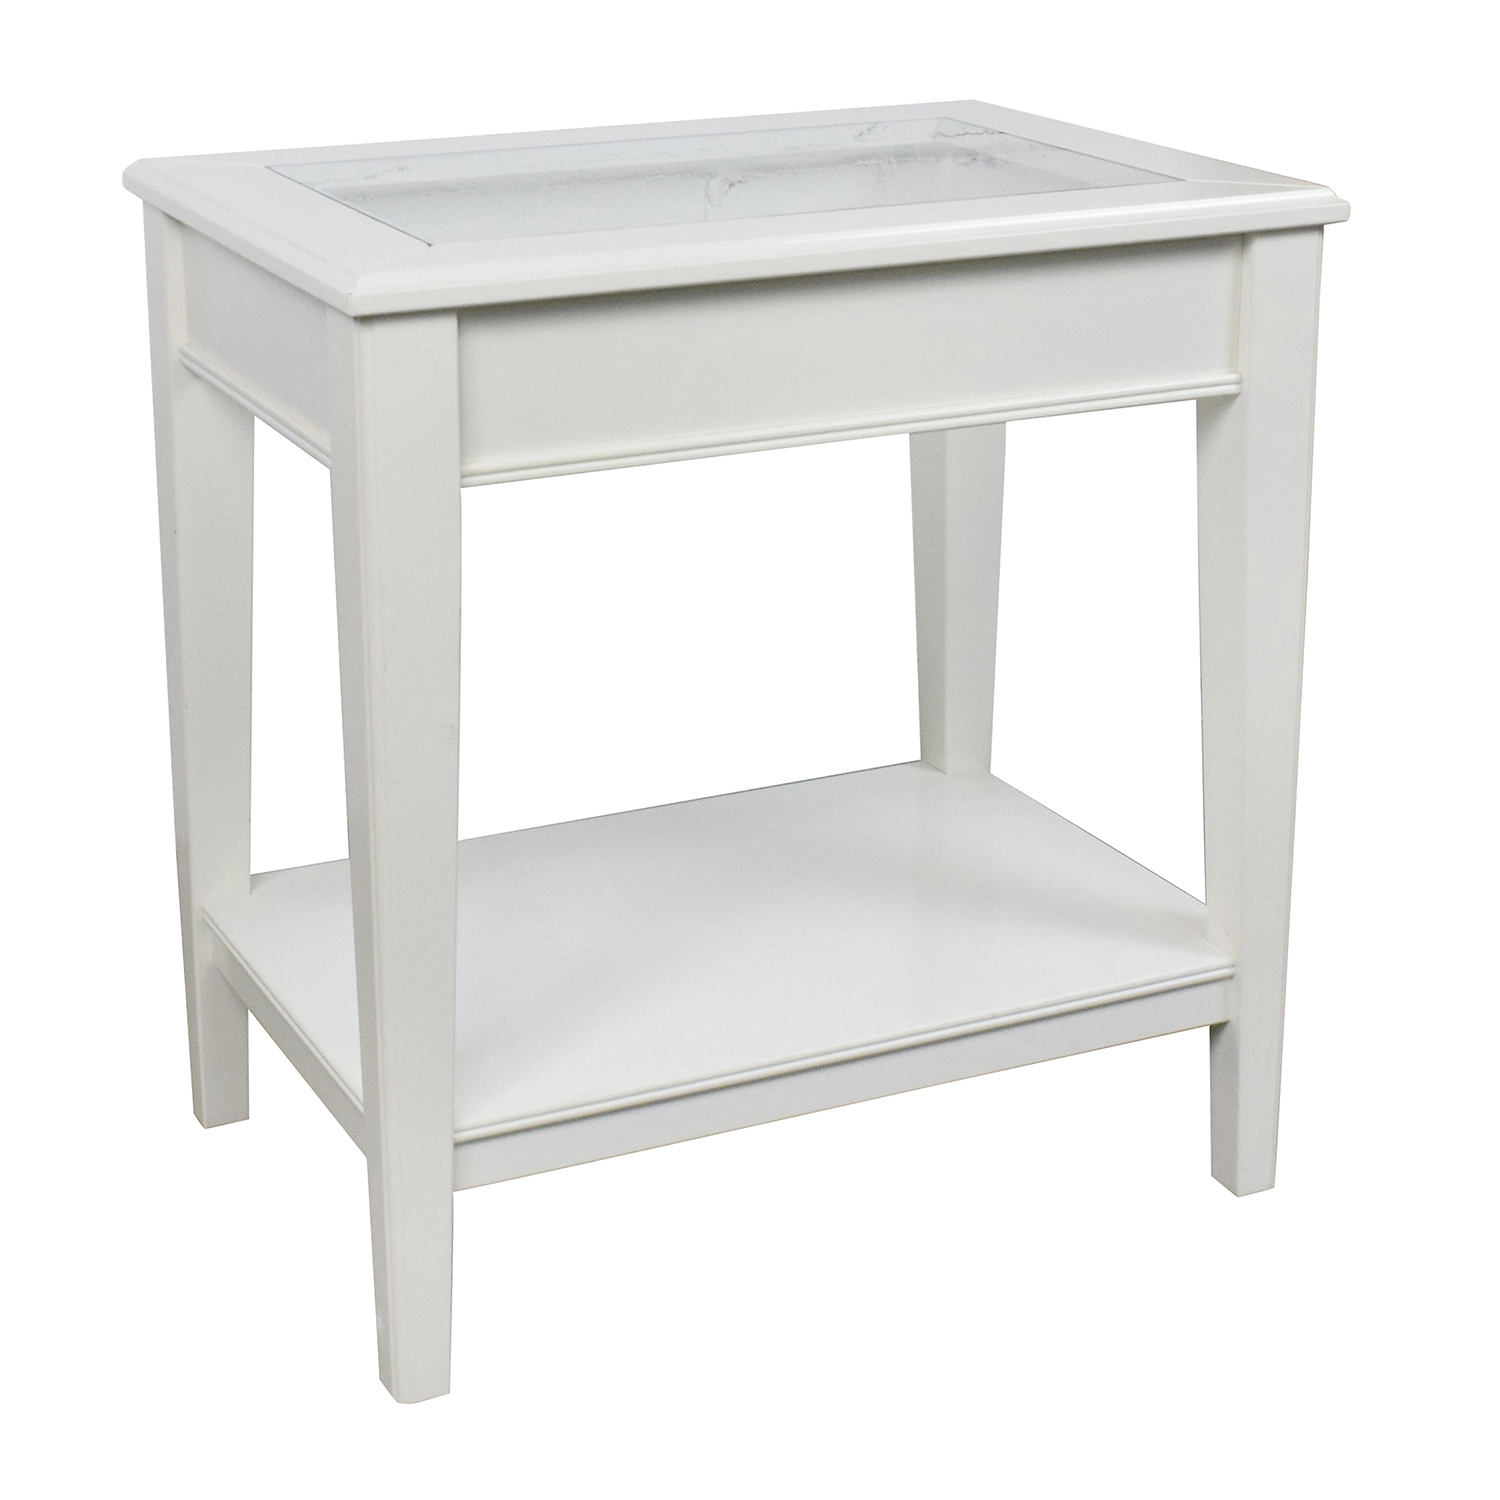 85 off west elm west elm white glass and wood side for White end table